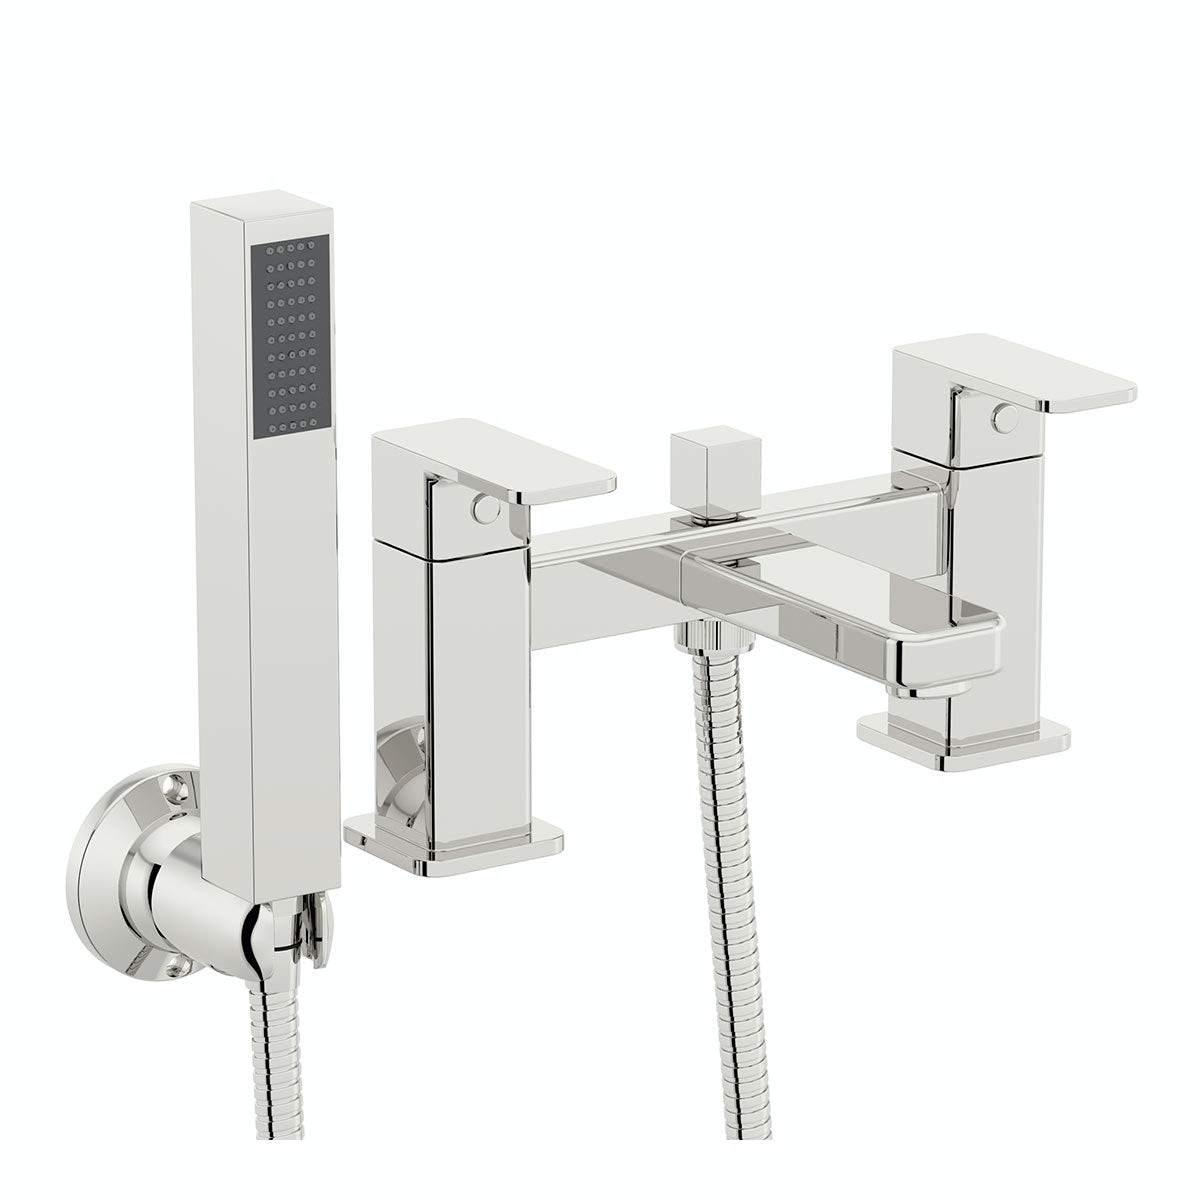 Quartz Bath Shower Mixer